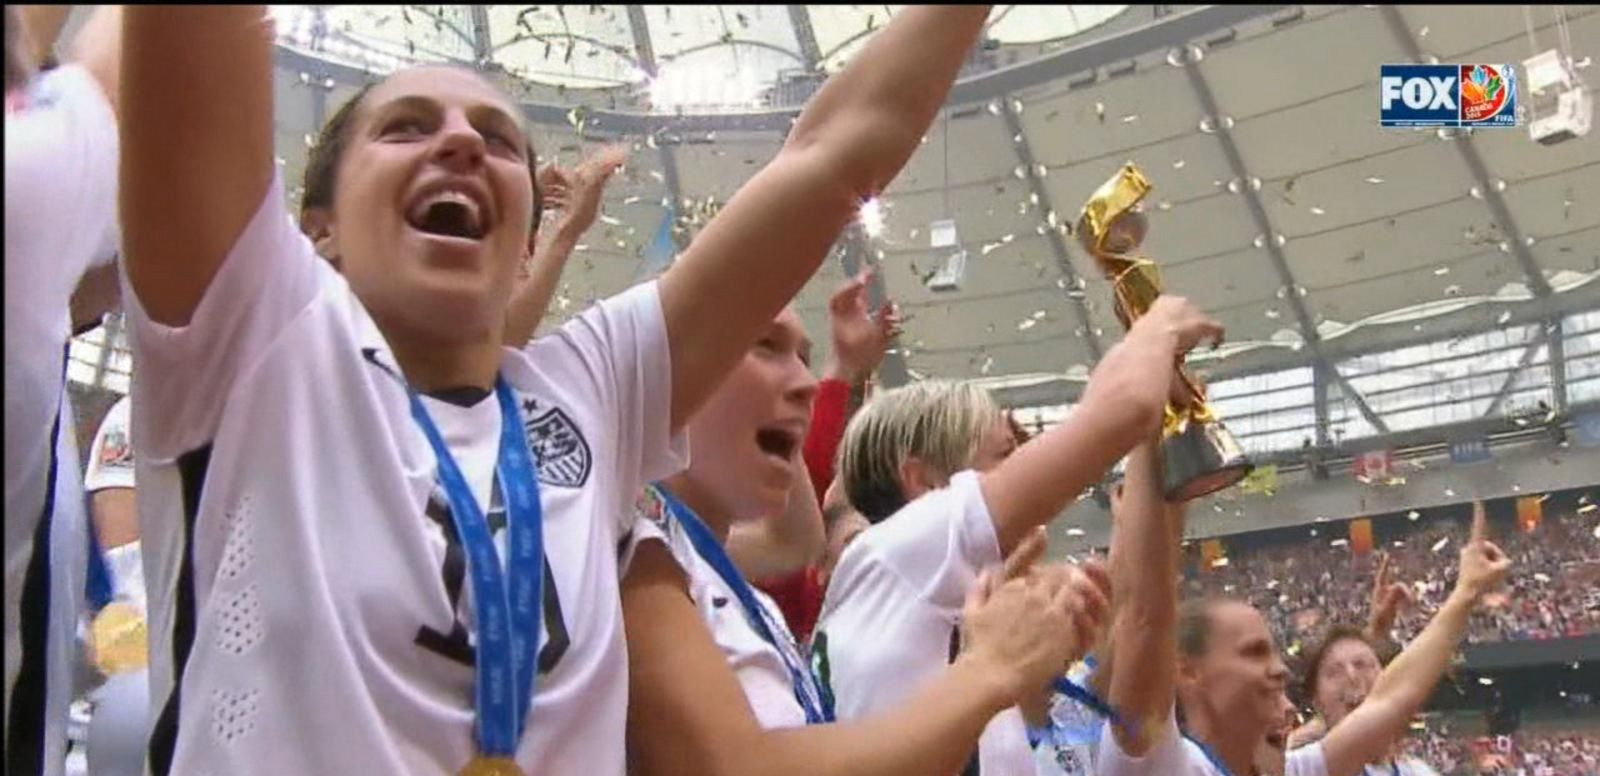 VIDEO: Team USA World Cup Victory Highlights Equal Pay Issue